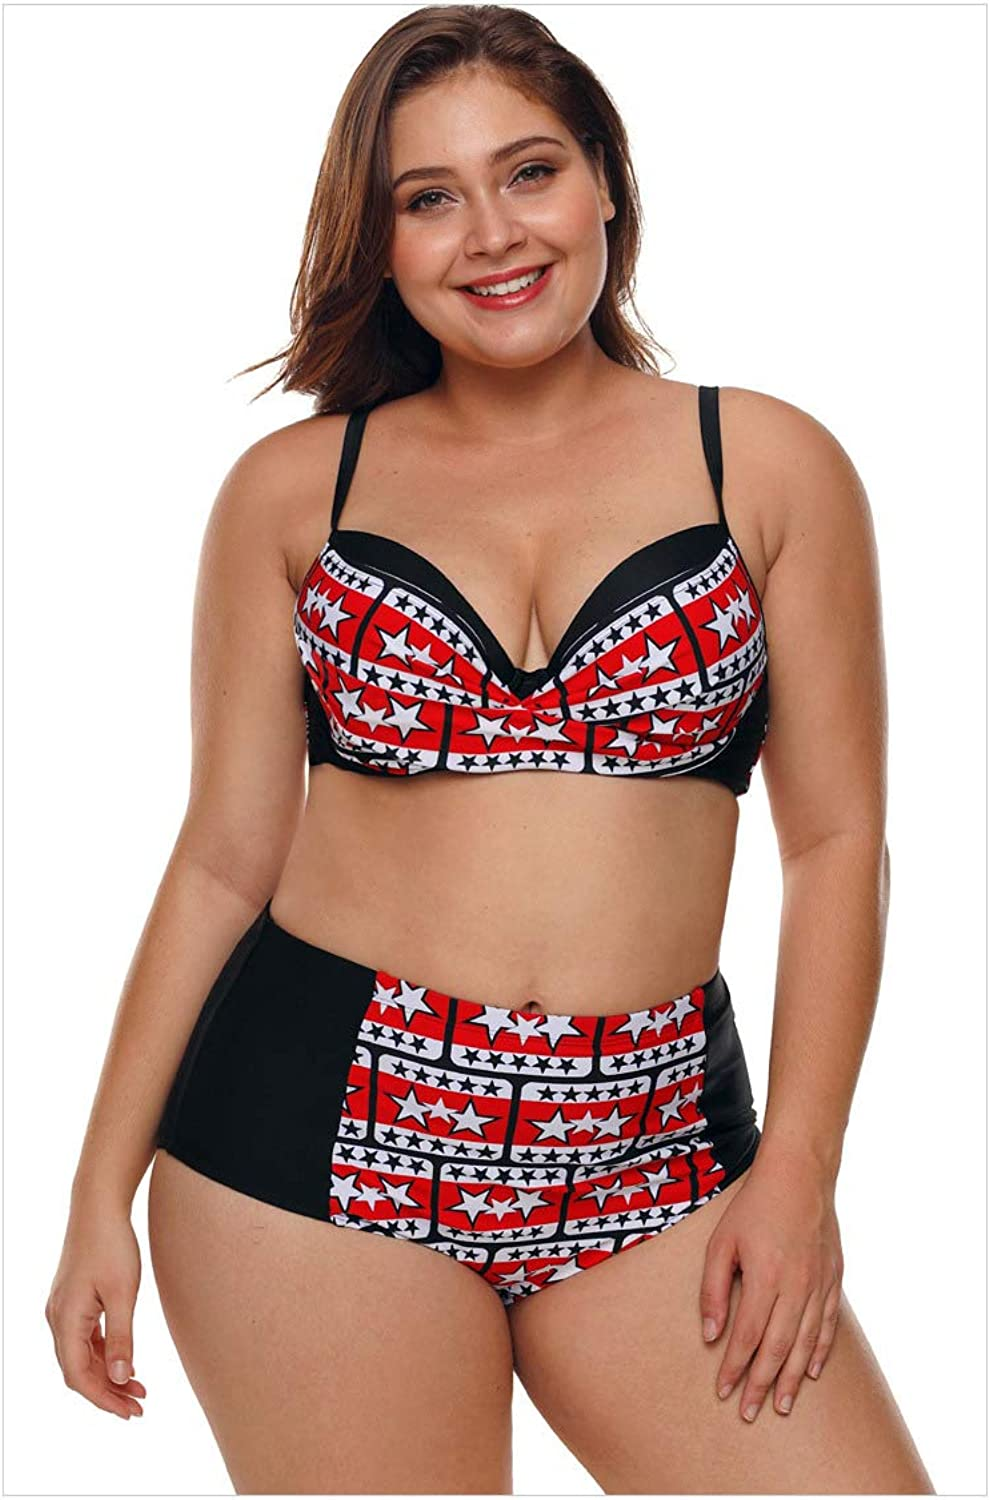 BuyBuyBuy Women's Large Size TwoPiece Swimsuit, LowCut Print with Straps and highRise TwoPiece Sexy Bikini Comfortable